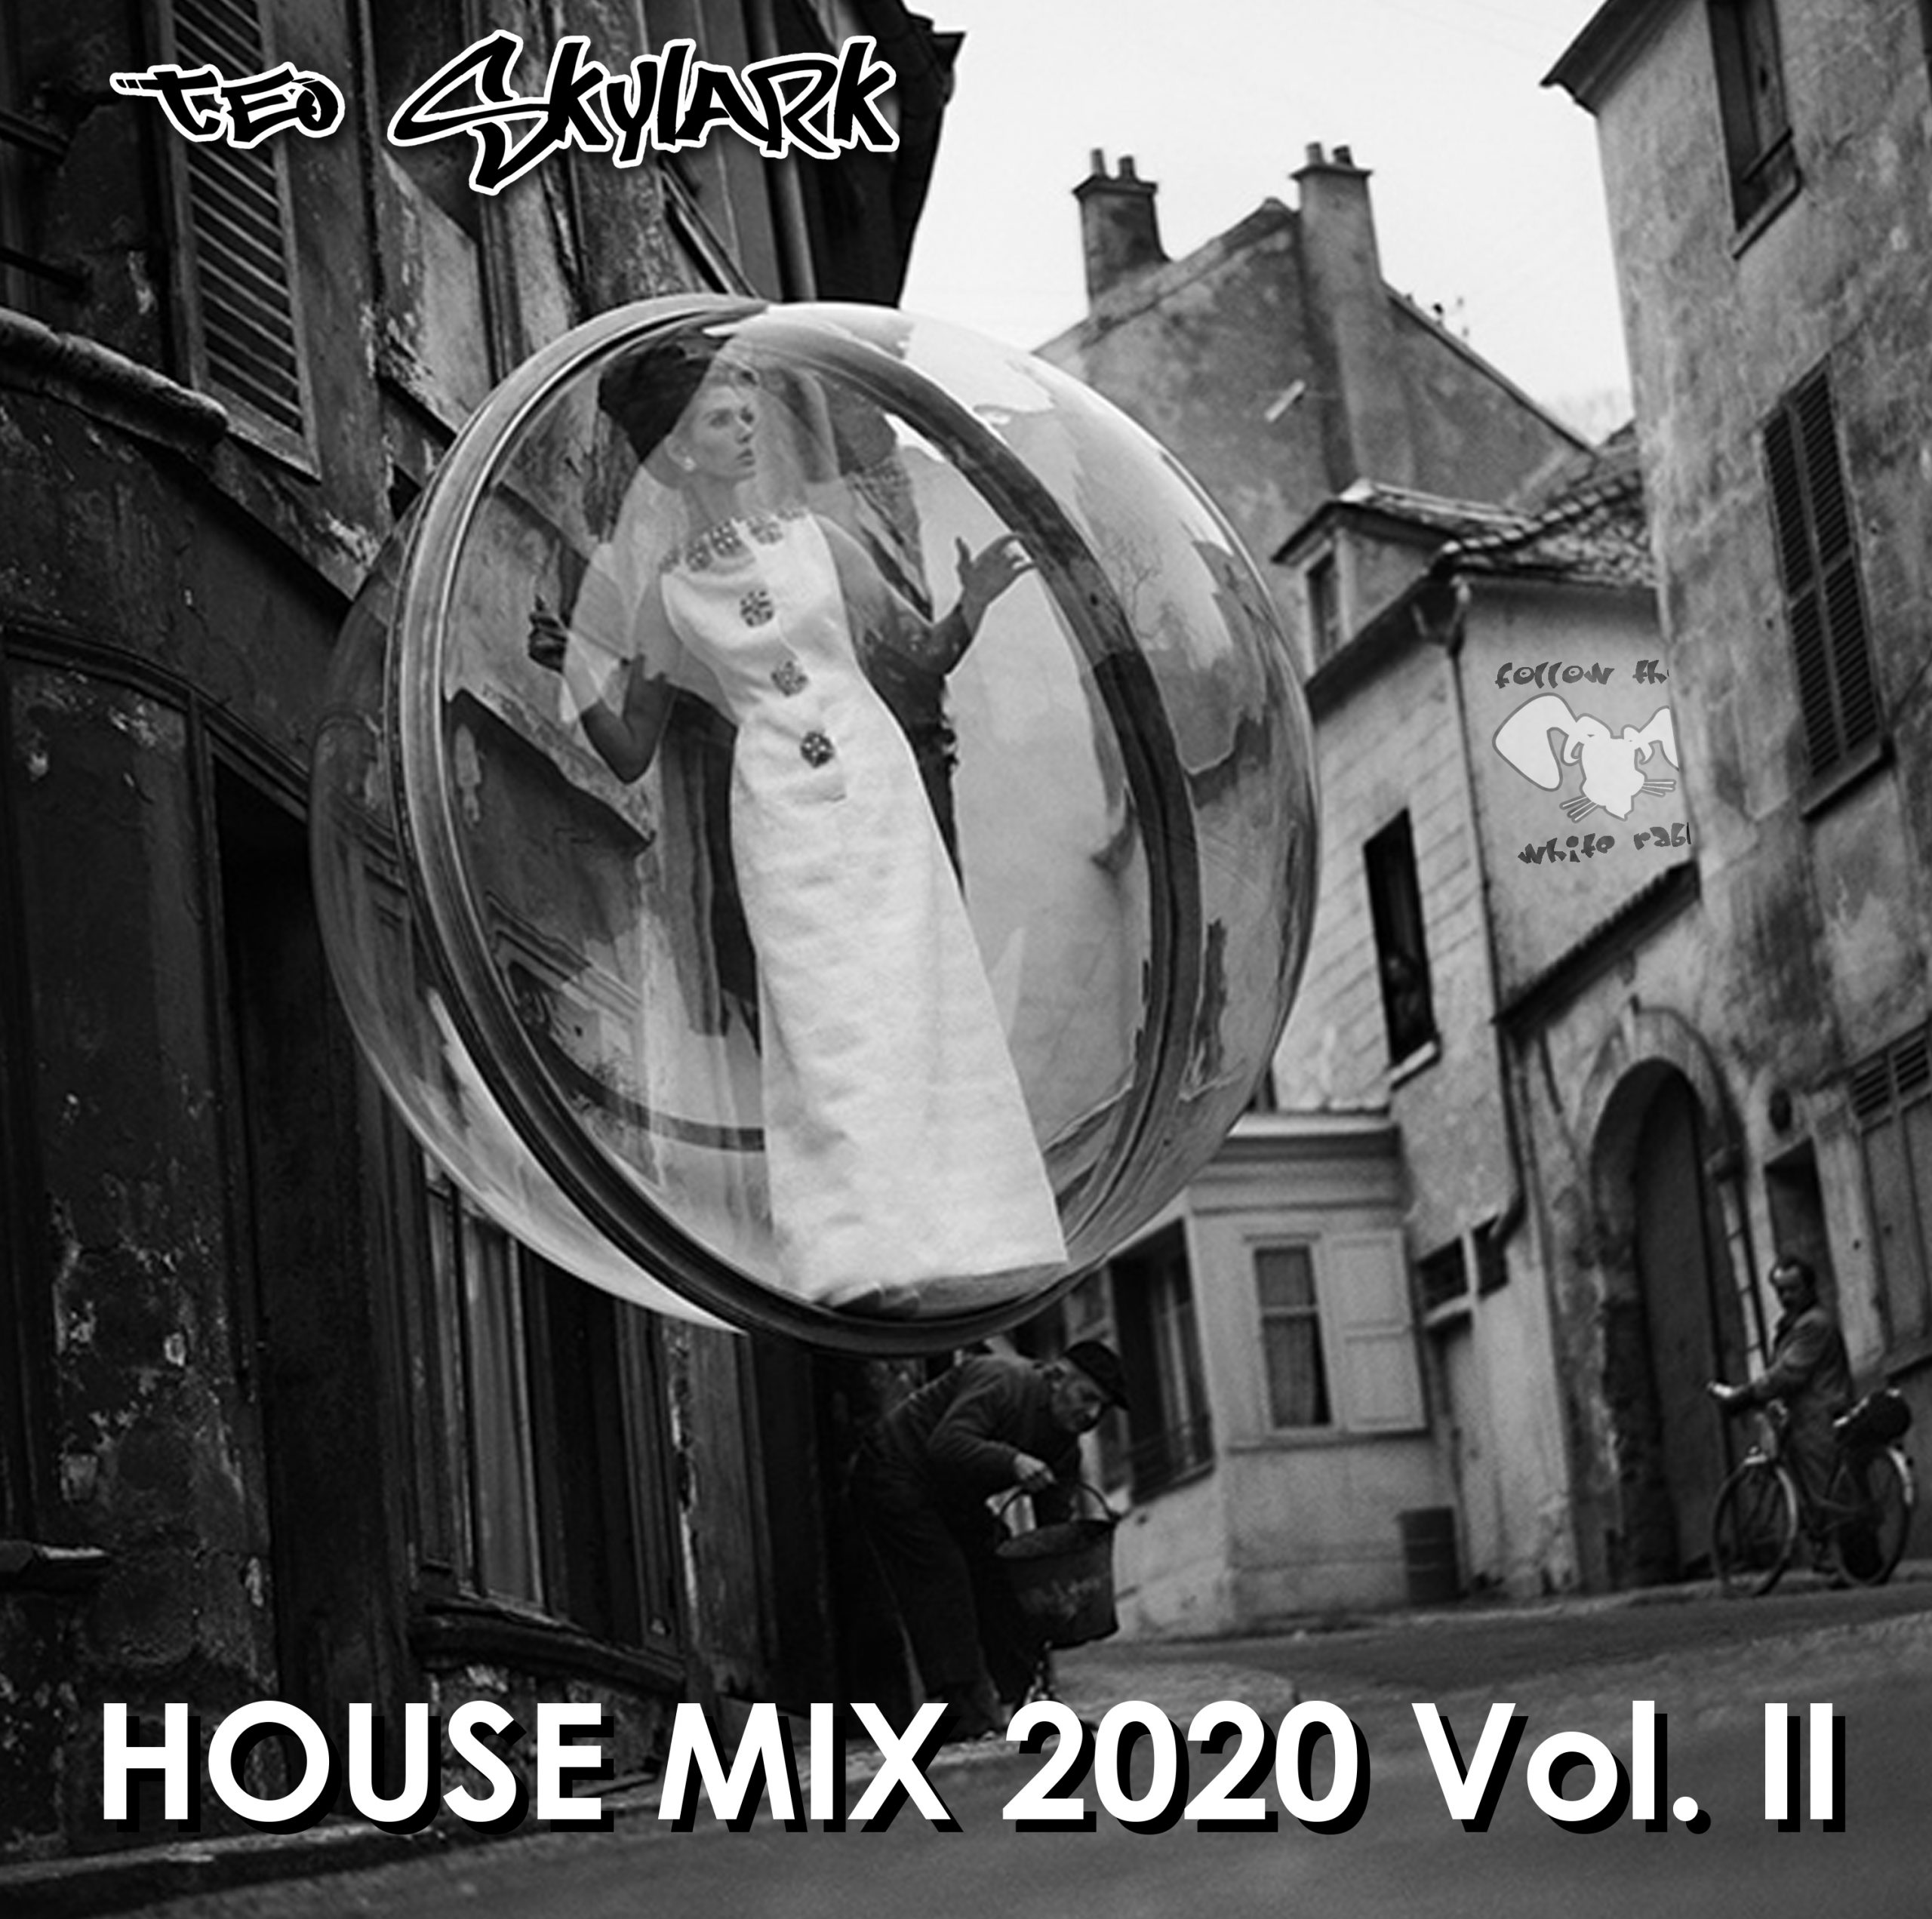 House Mix 2020 vol. II